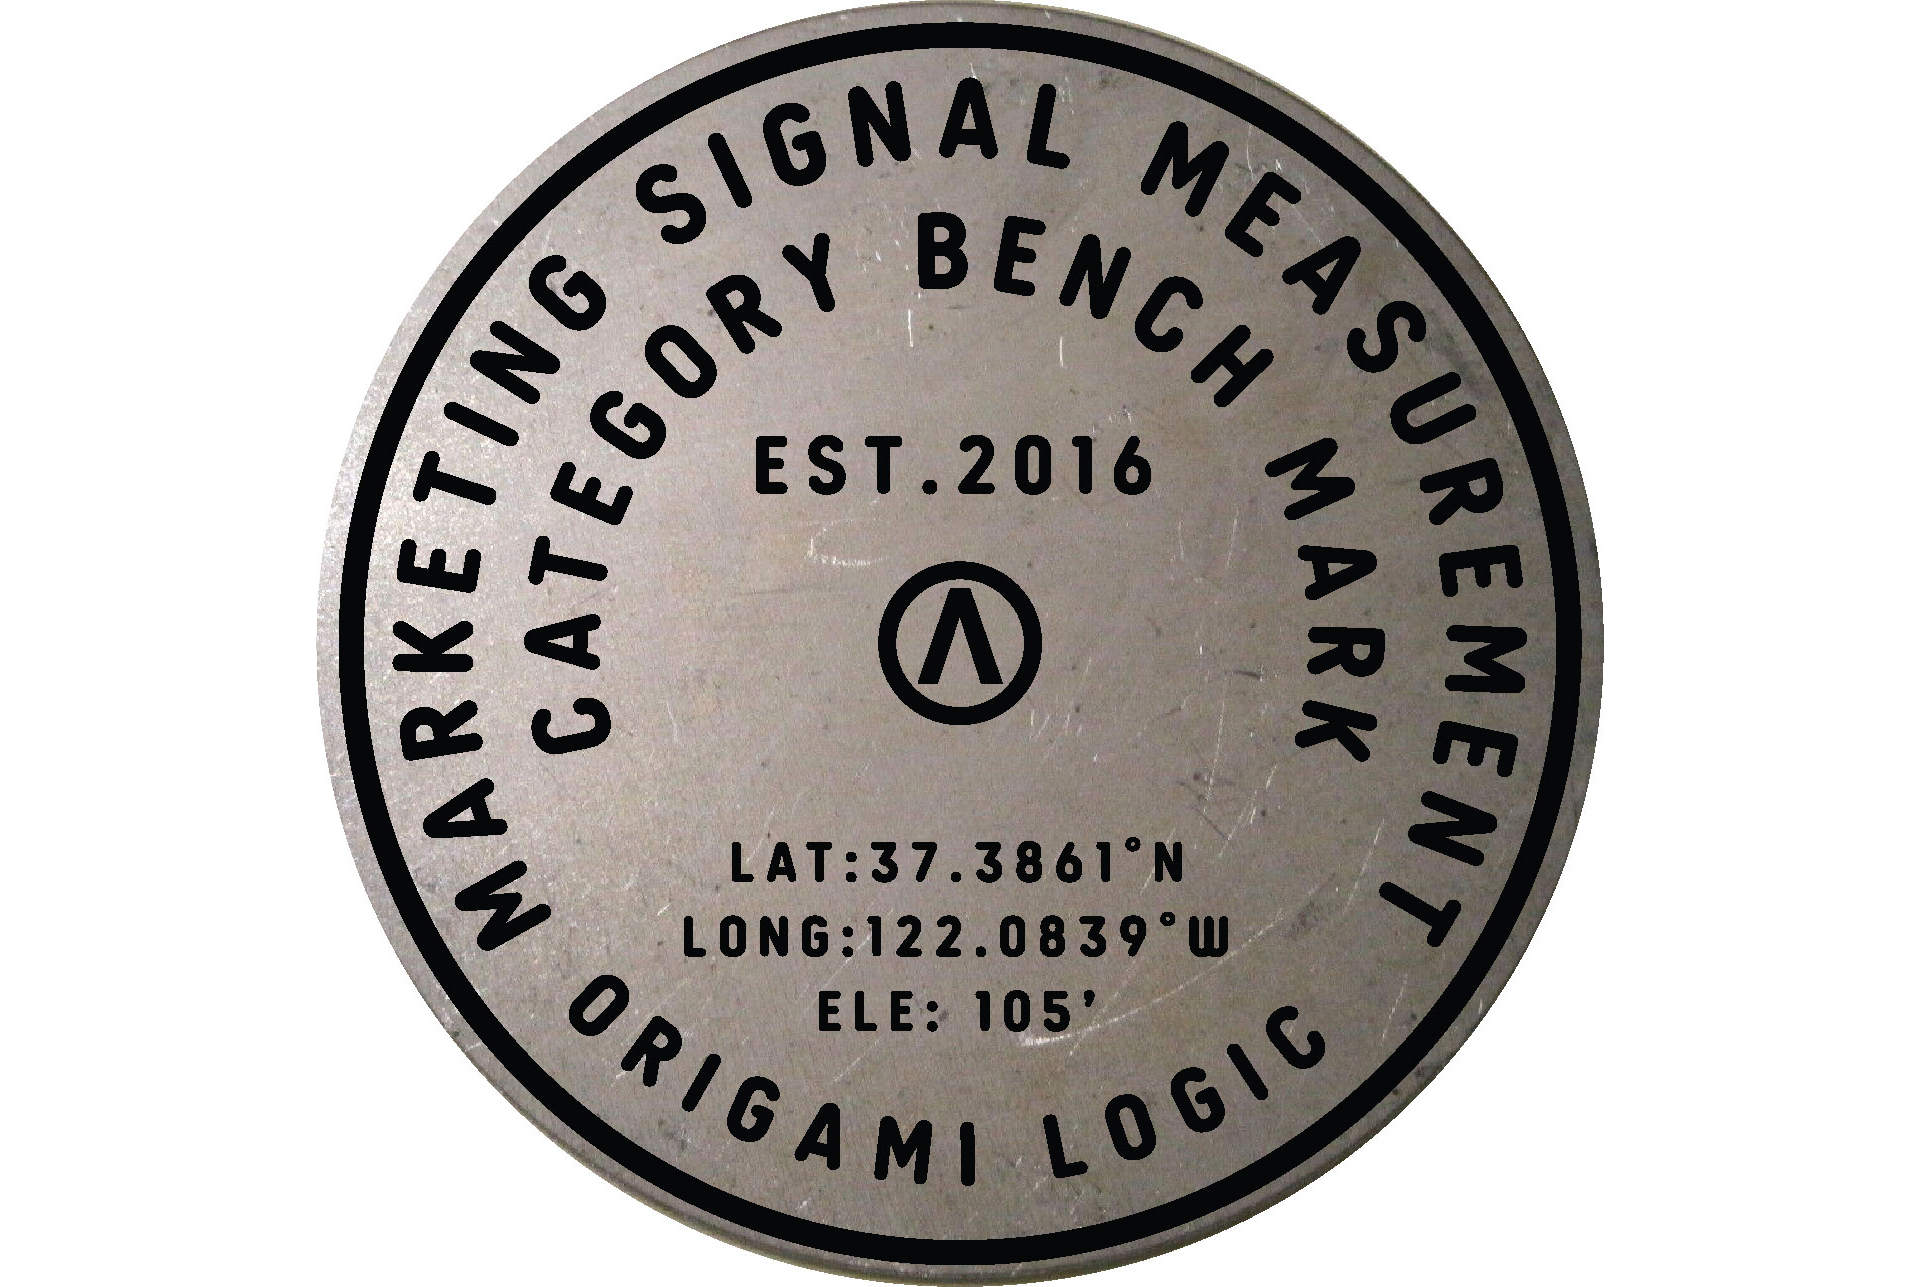 Marketing Signal Measurement